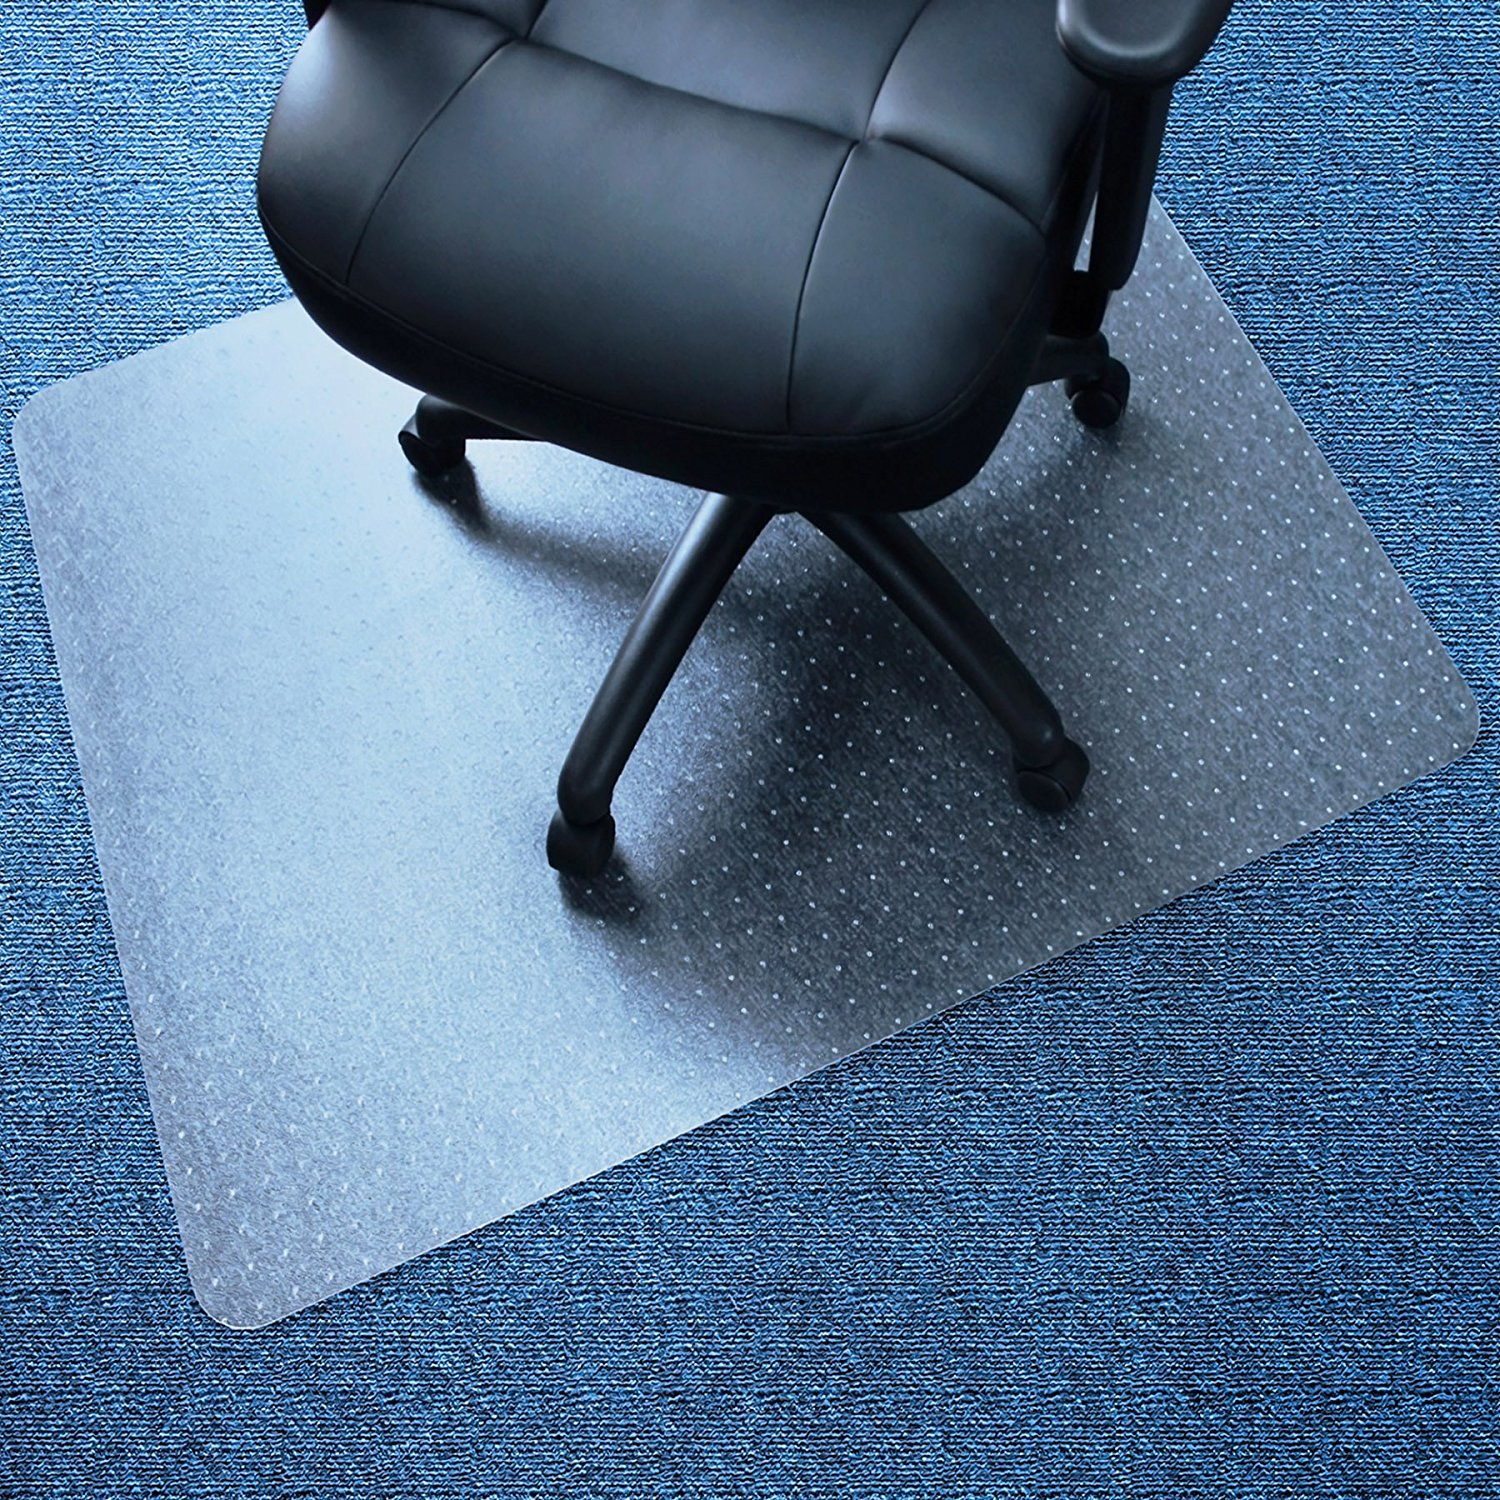 Details About Pvc Clear Chair Mat Home Office Computer Desk Floor Carpet Protector 35 47